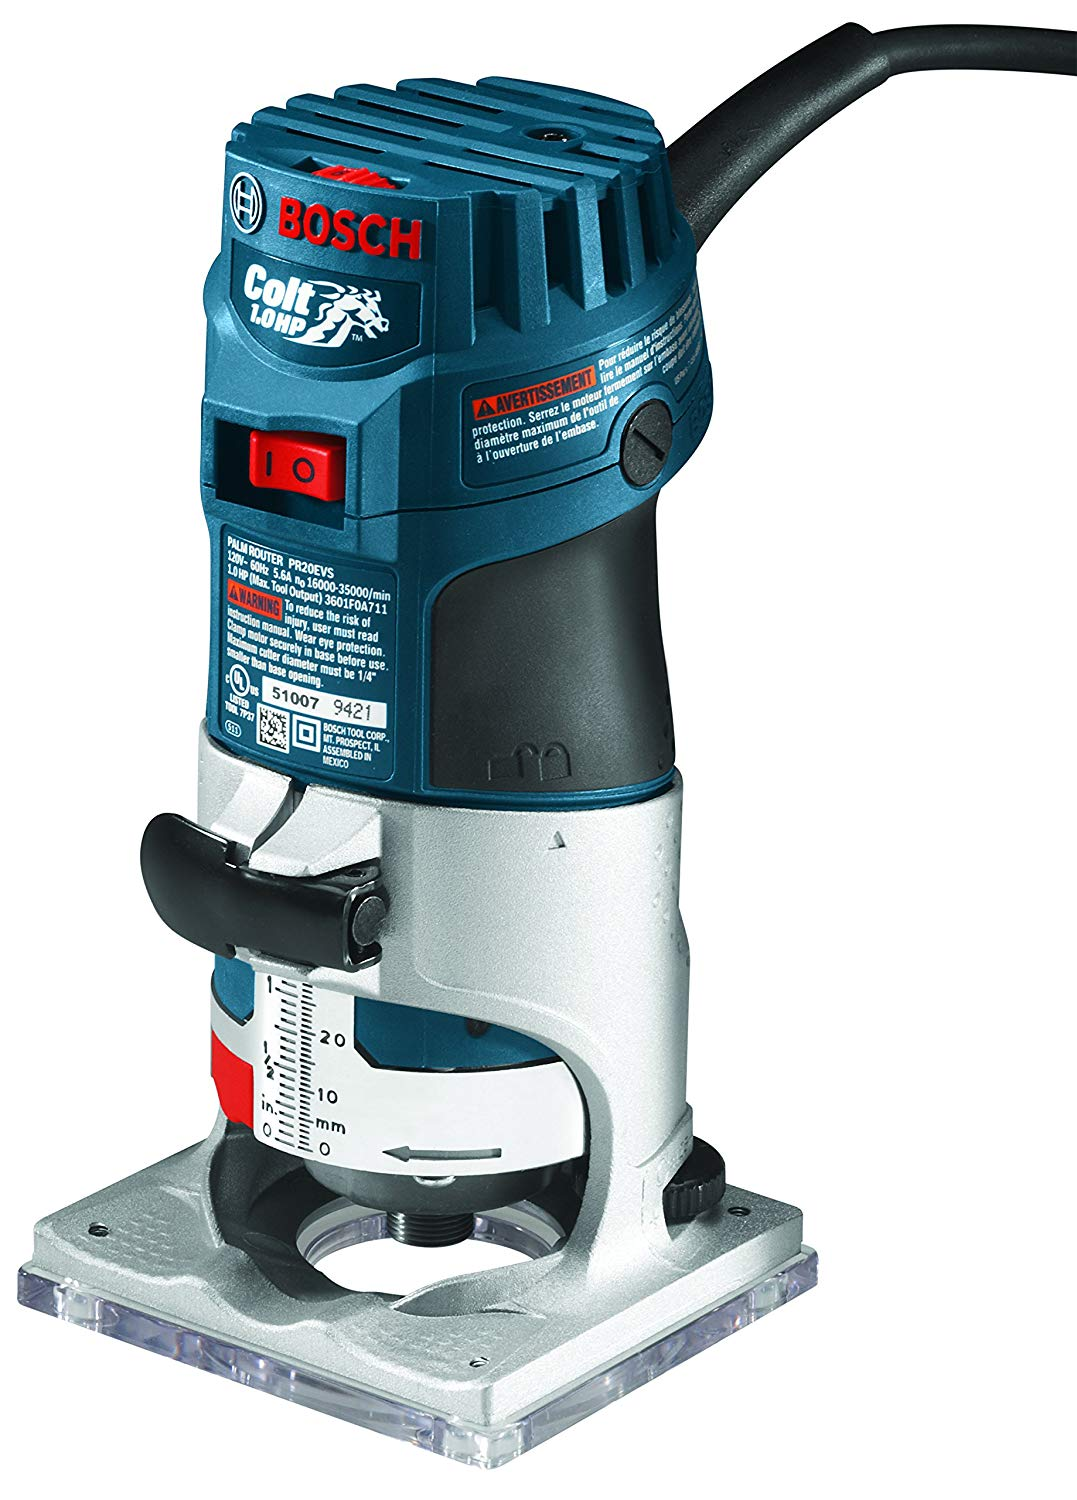 Bosch Colt 1HP Palm Router